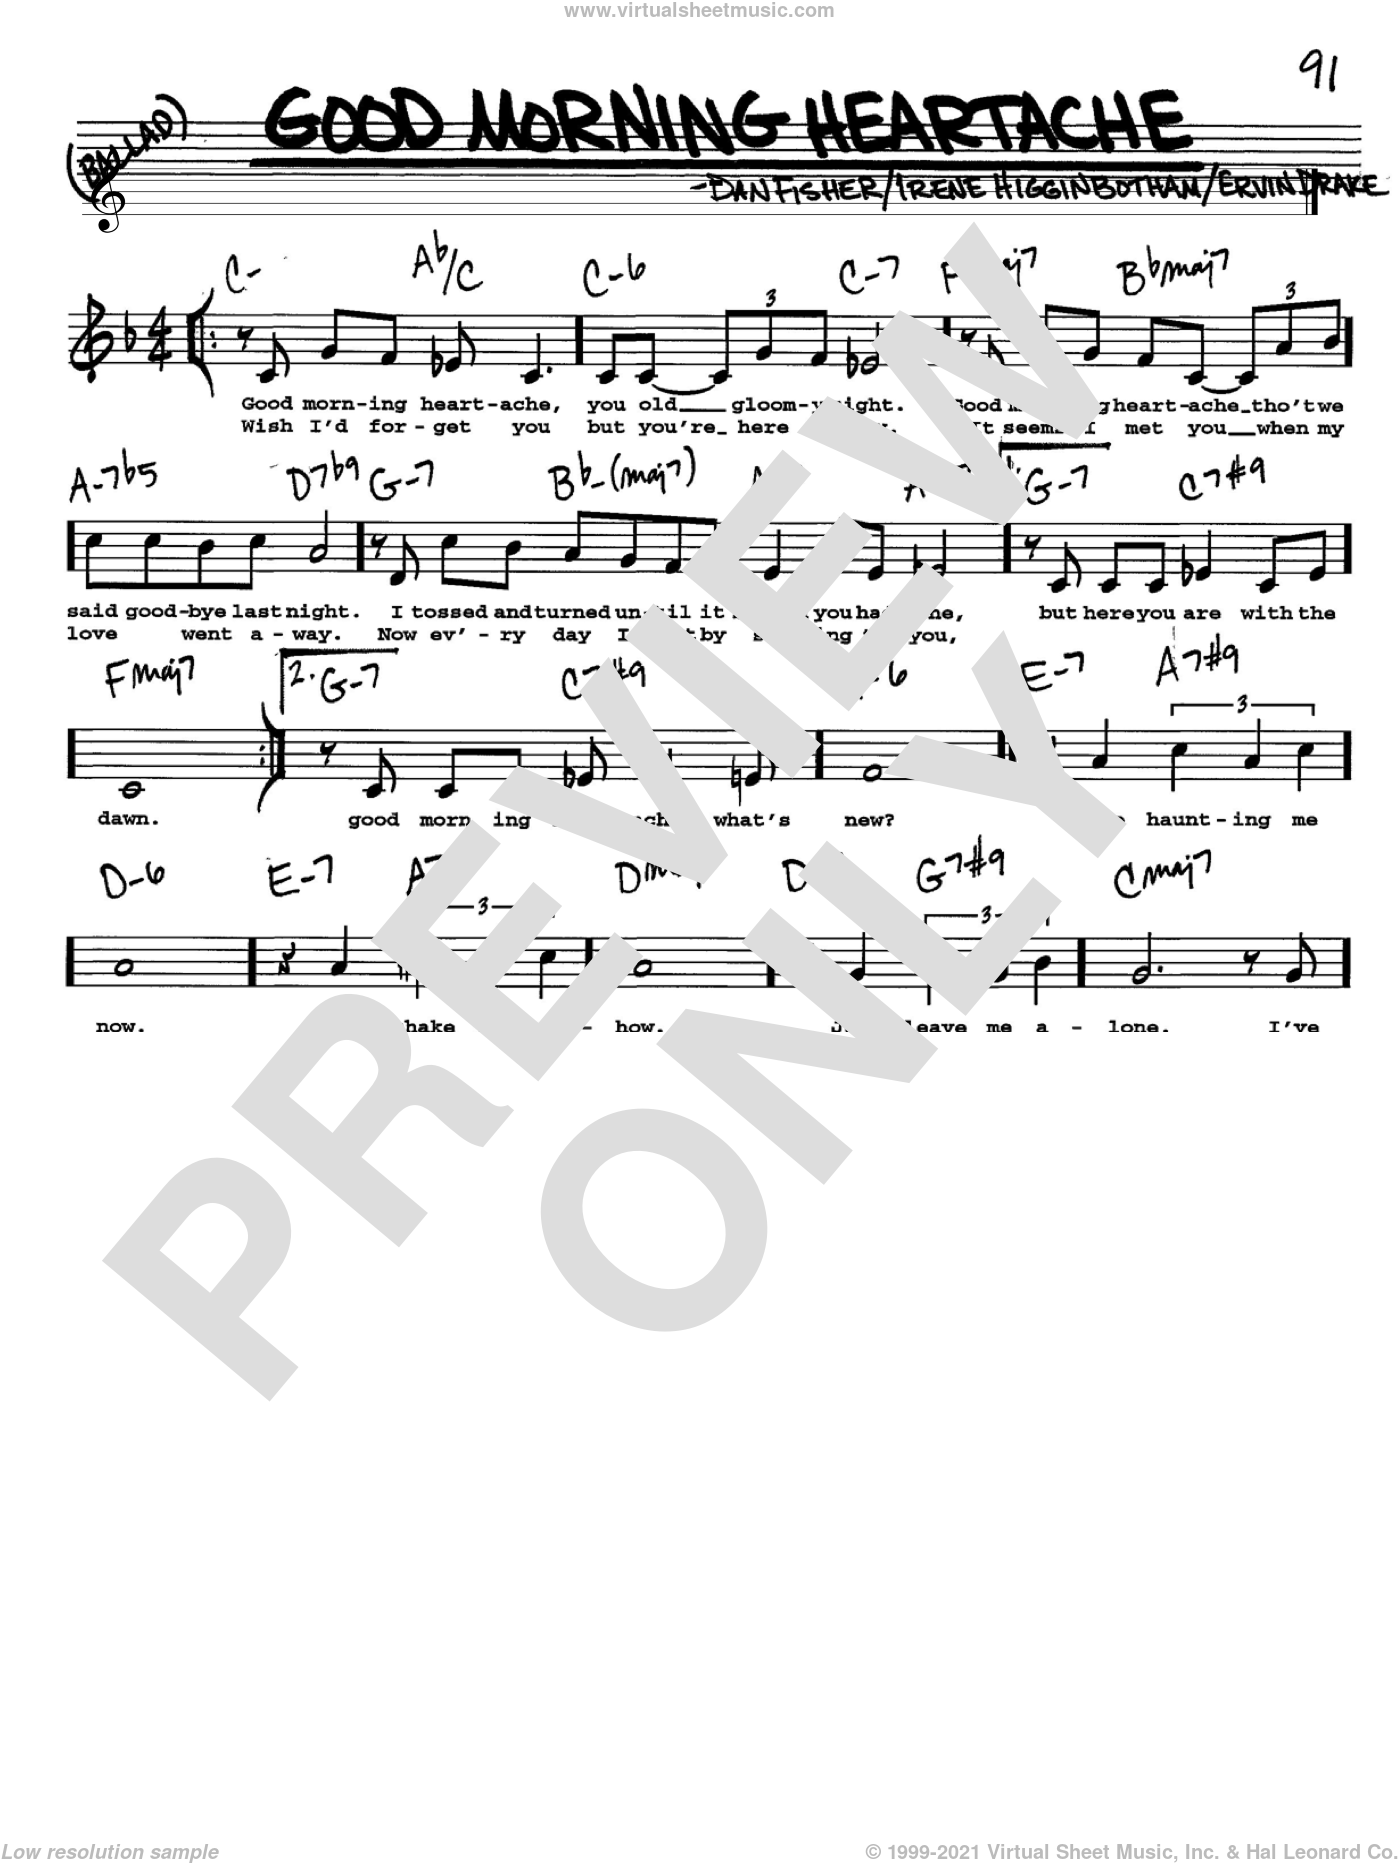 Good Morning Heartache sheet music for voice and other instruments (Vocal Volume 2) by Irene Higginbotham, Billie Holiday, Dan Fisher and Ervin Drake. Score Image Preview.